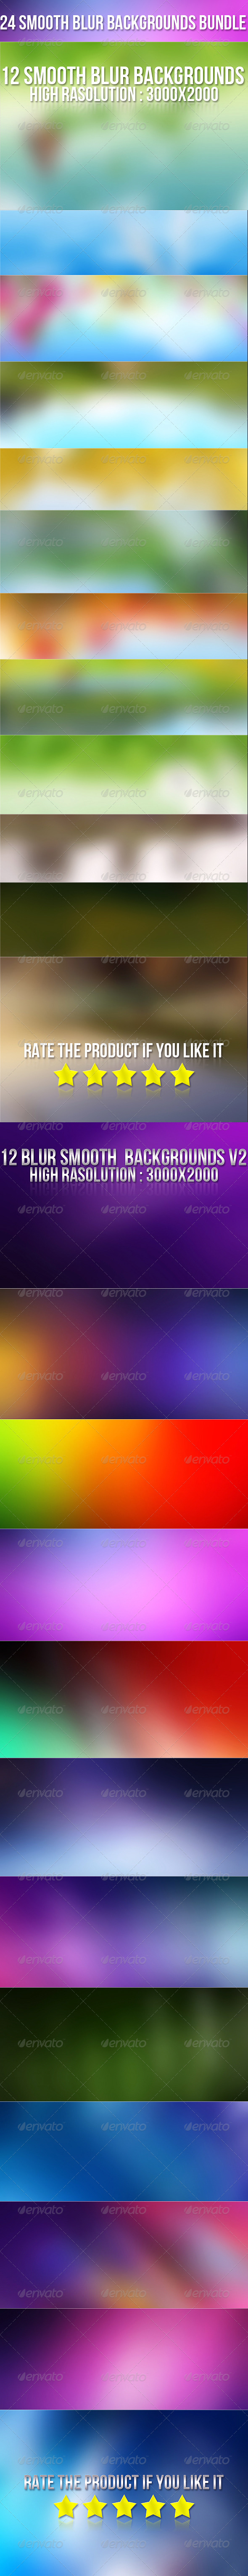 GraphicRiver 24 Smooth Blur Background Bundle 6629397